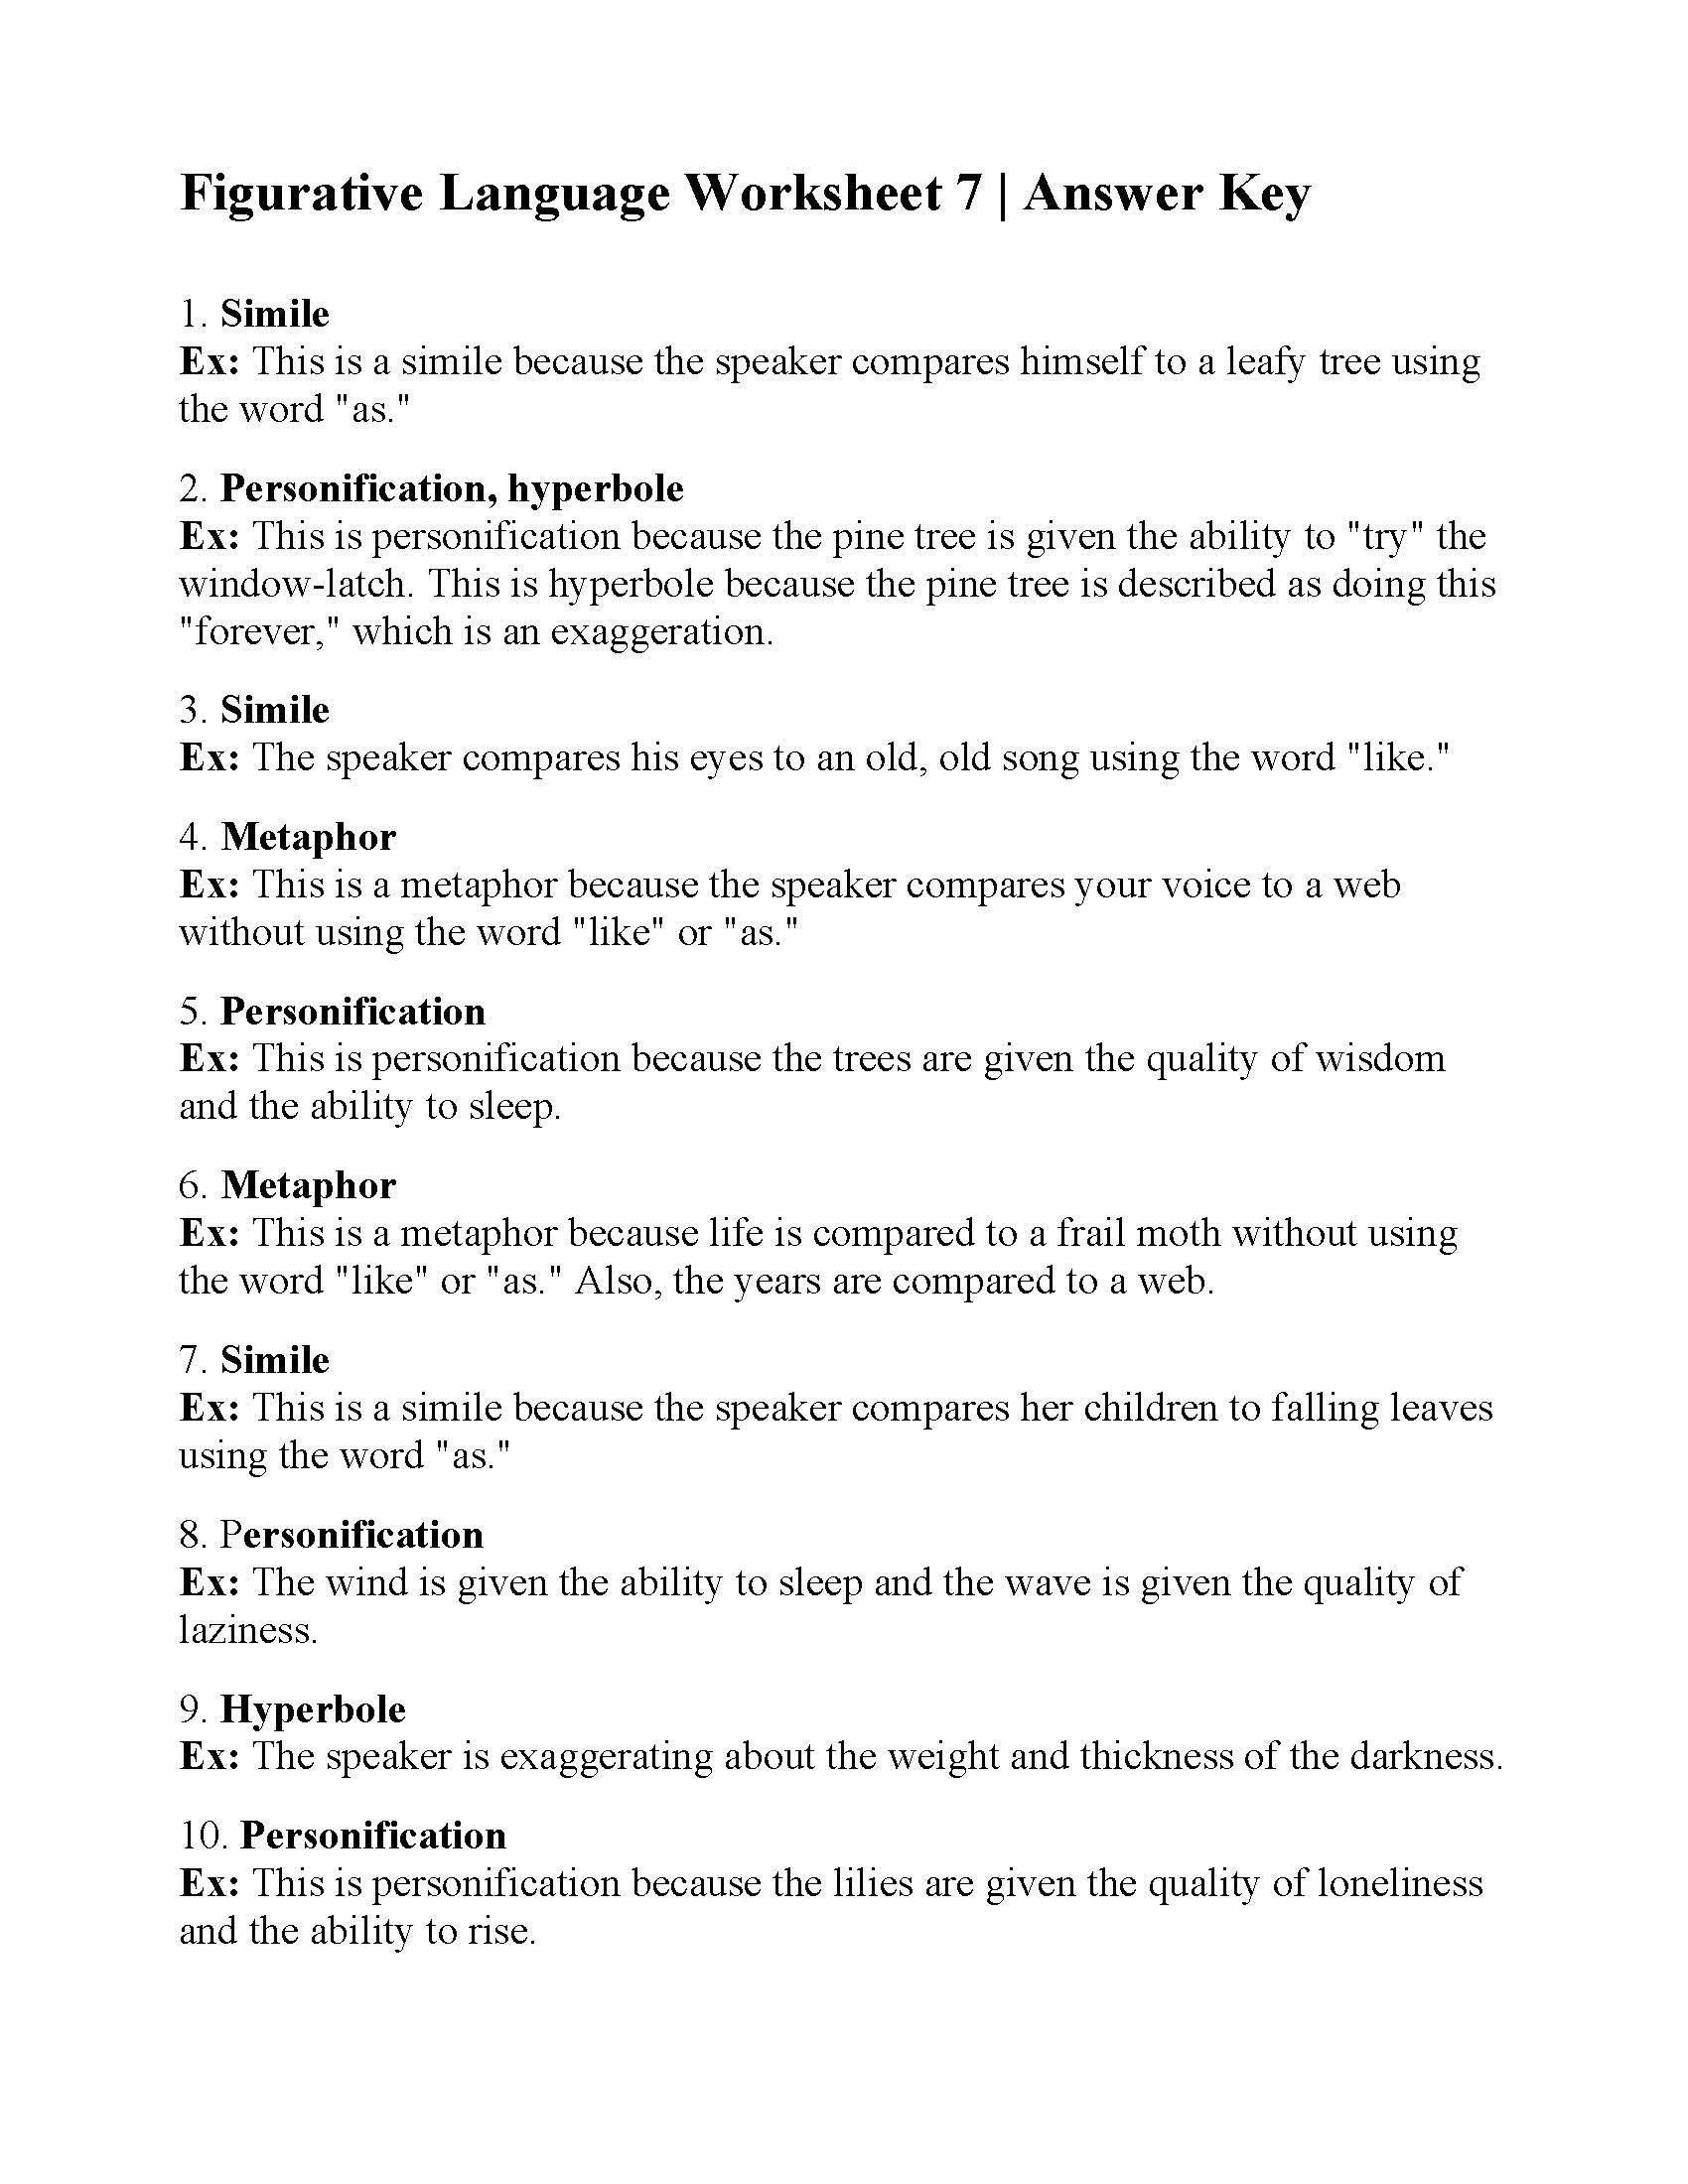 Personification Worksheets Answers Figurative Language Test 1 Answer Key